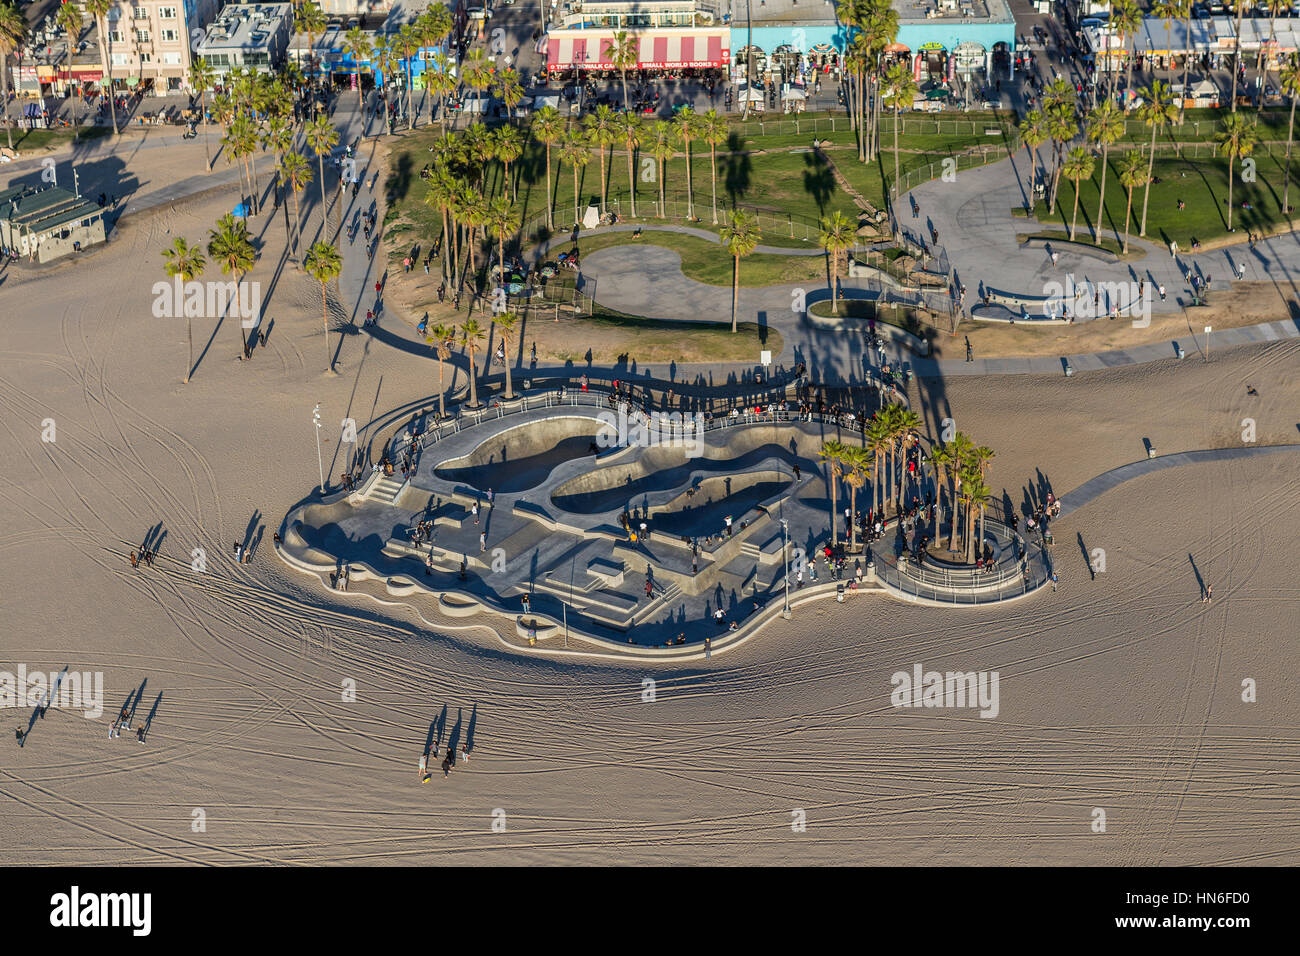 Los Angeles, California, USA - December 17, 2016:  Afternoon aerial view of Venice Beach skate park in Southern - Stock Image